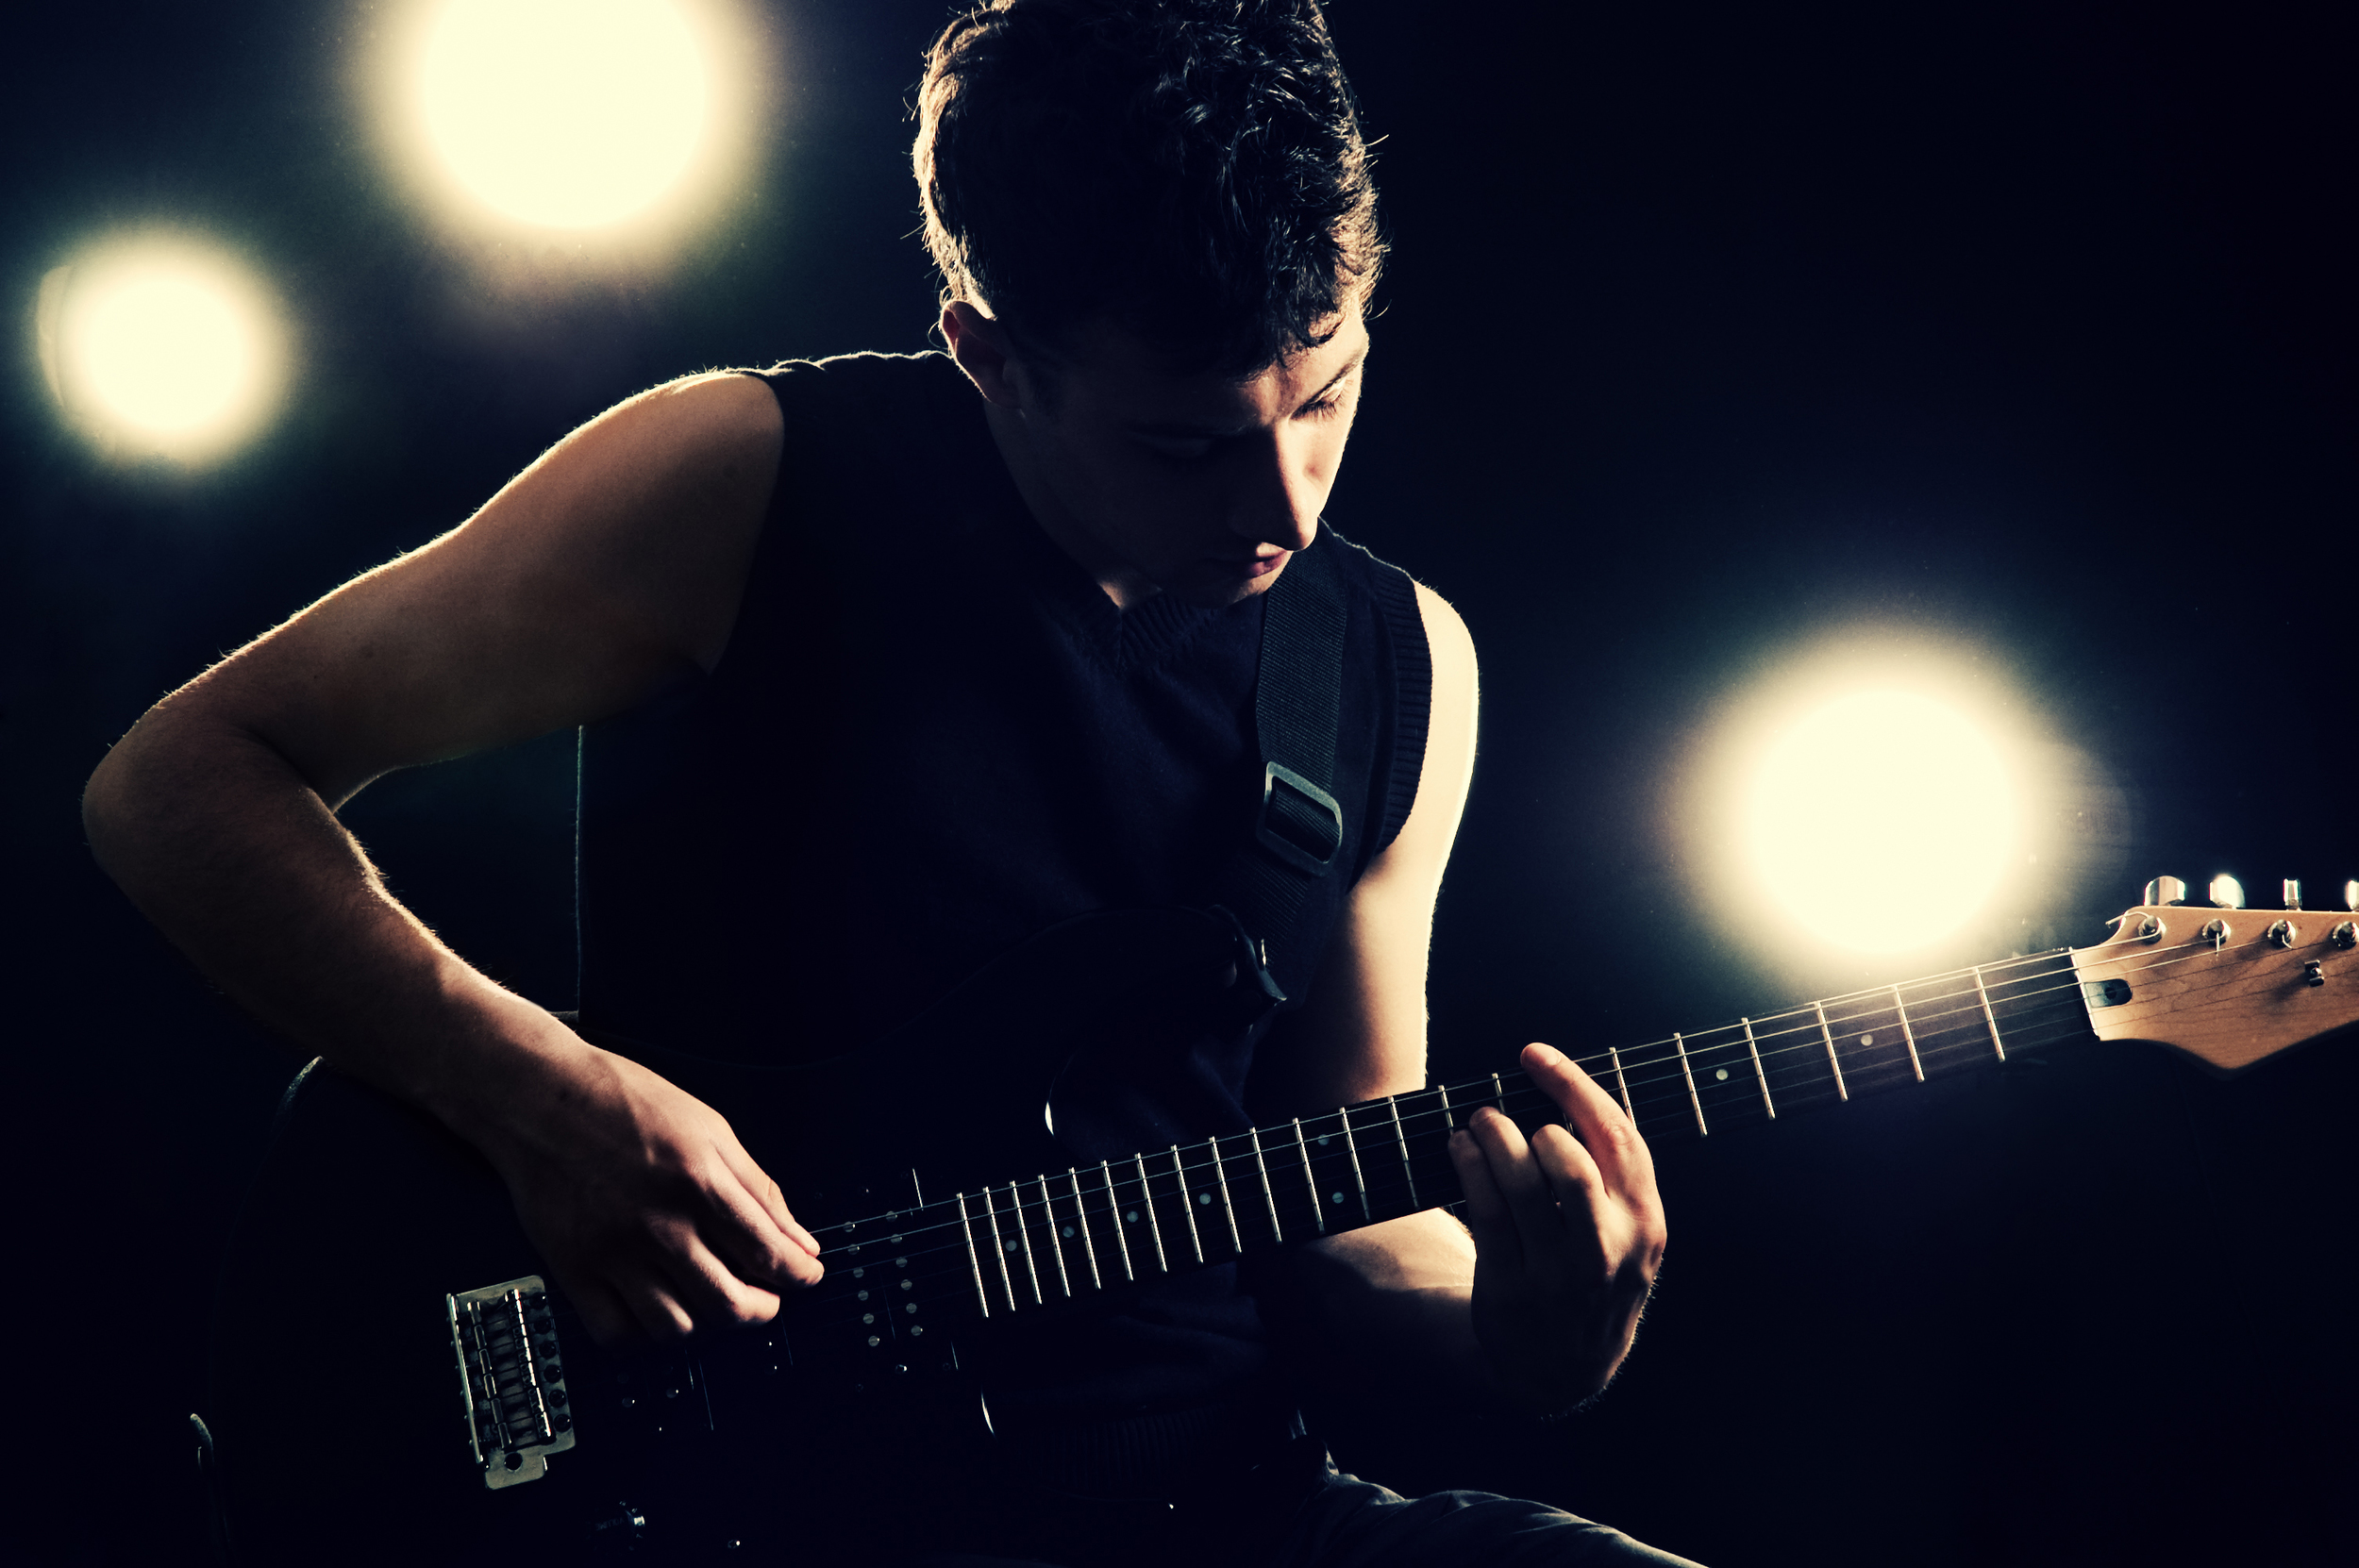 Is a pro session musician the answer?